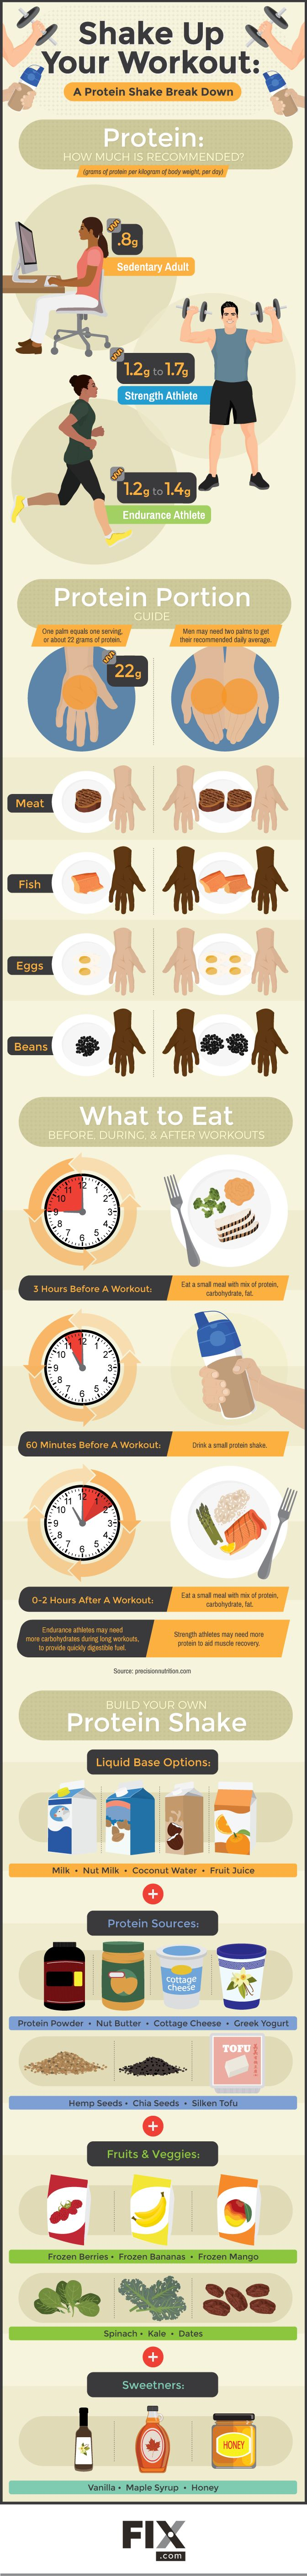 Shake Up Your Workout: Breaking Down Protein Shakes #Infographic #Health